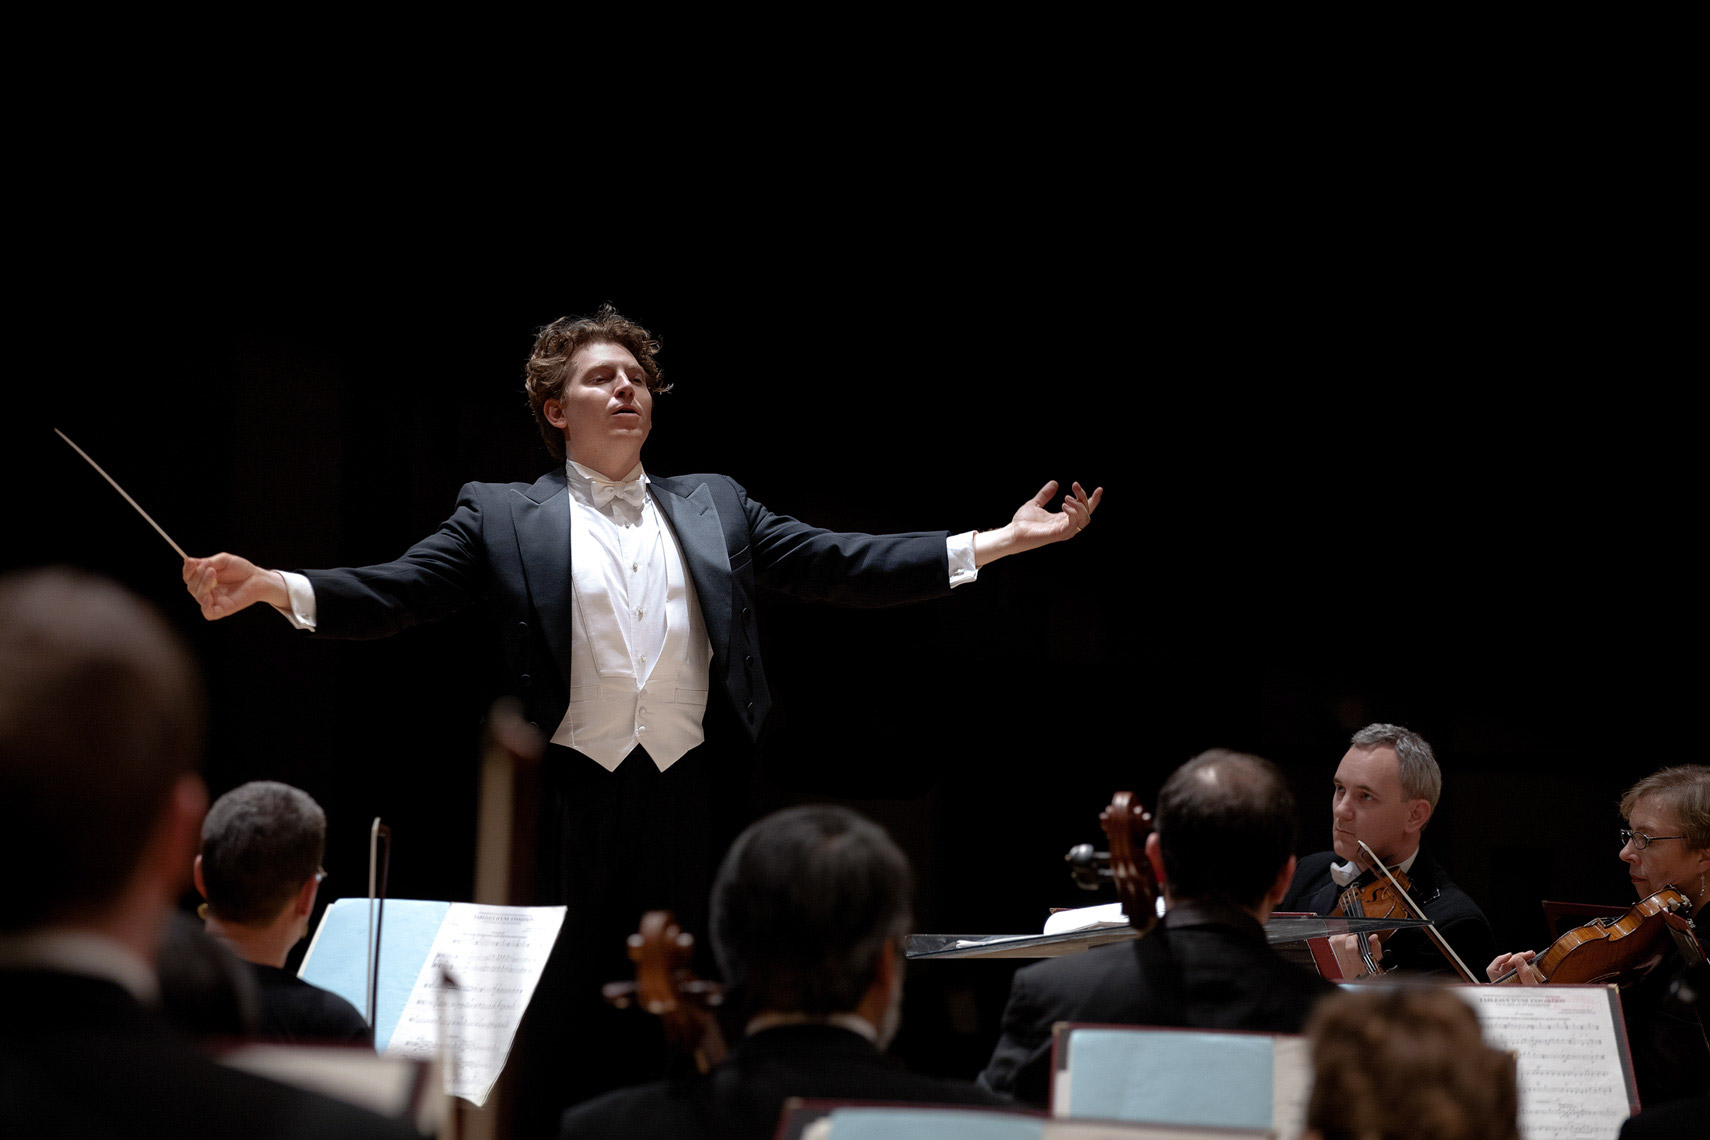 Philip Mann, conductor of Arkansas Symphony Orchestra